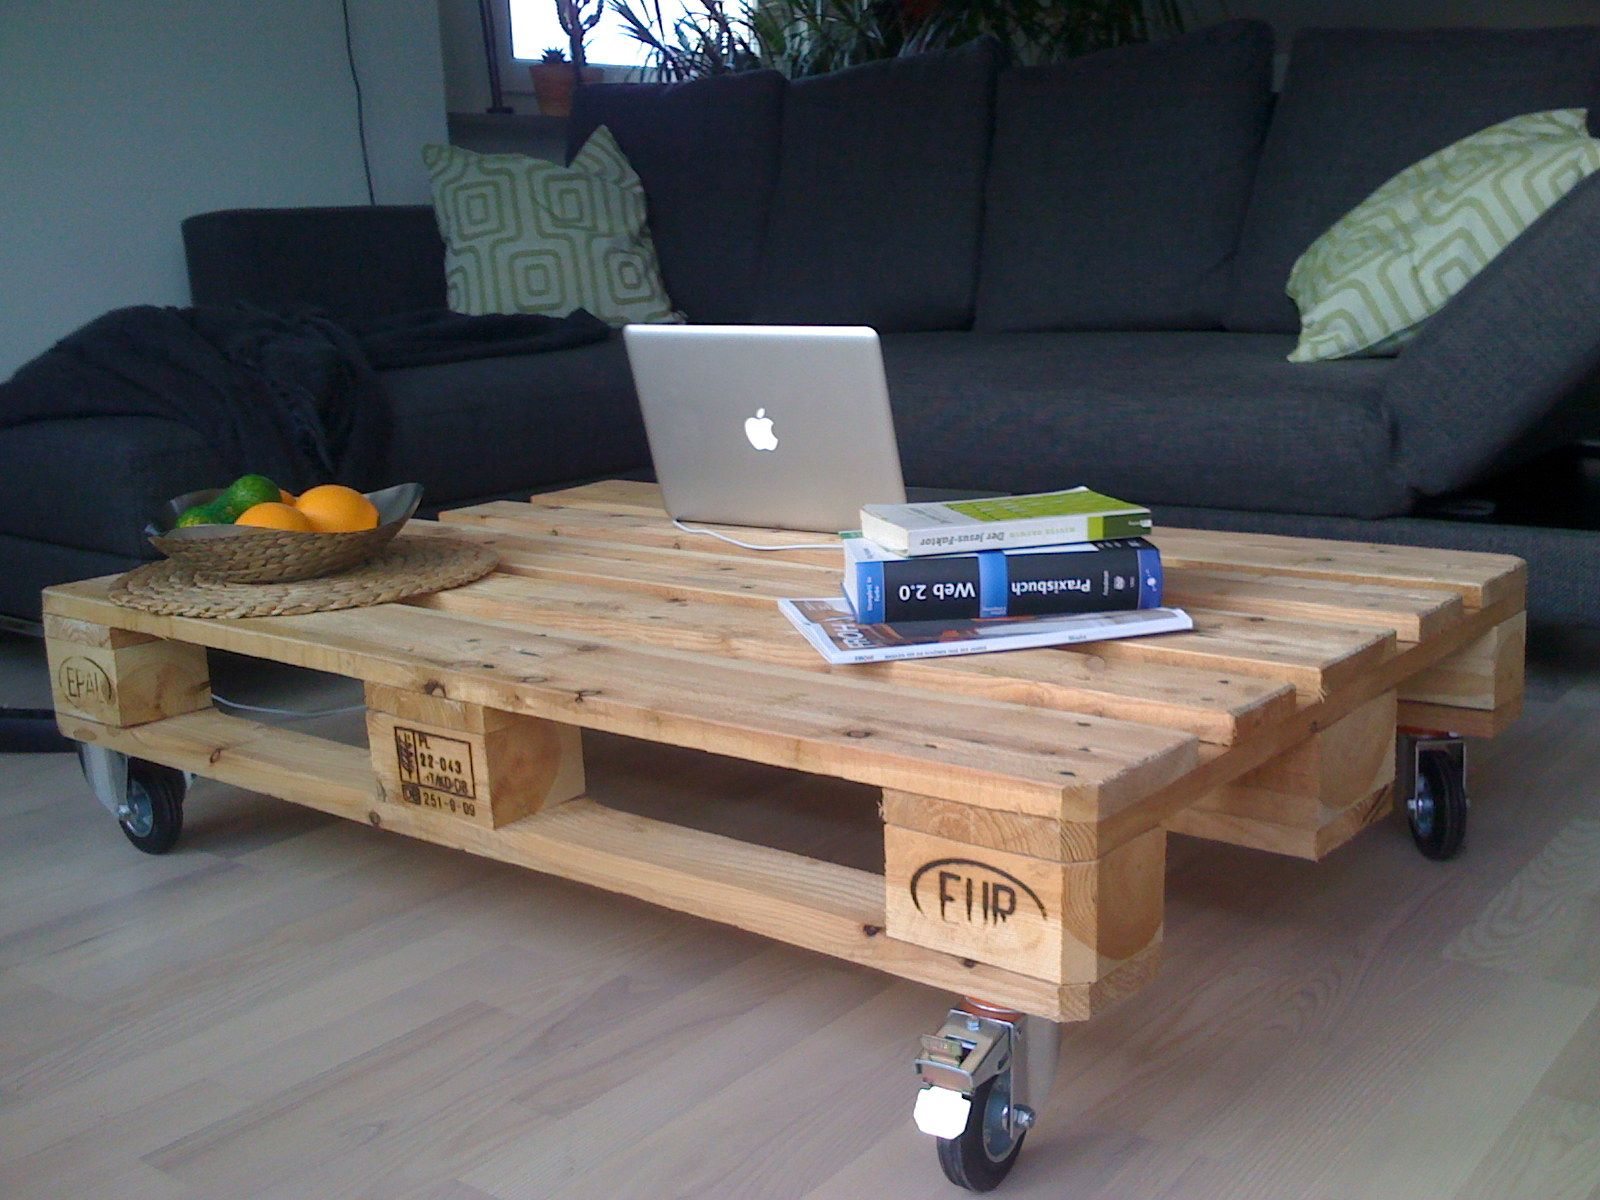 Wohnzimmertisch Paletten Holz Europalett Tisch Idee Need It Sectional Coffee Table